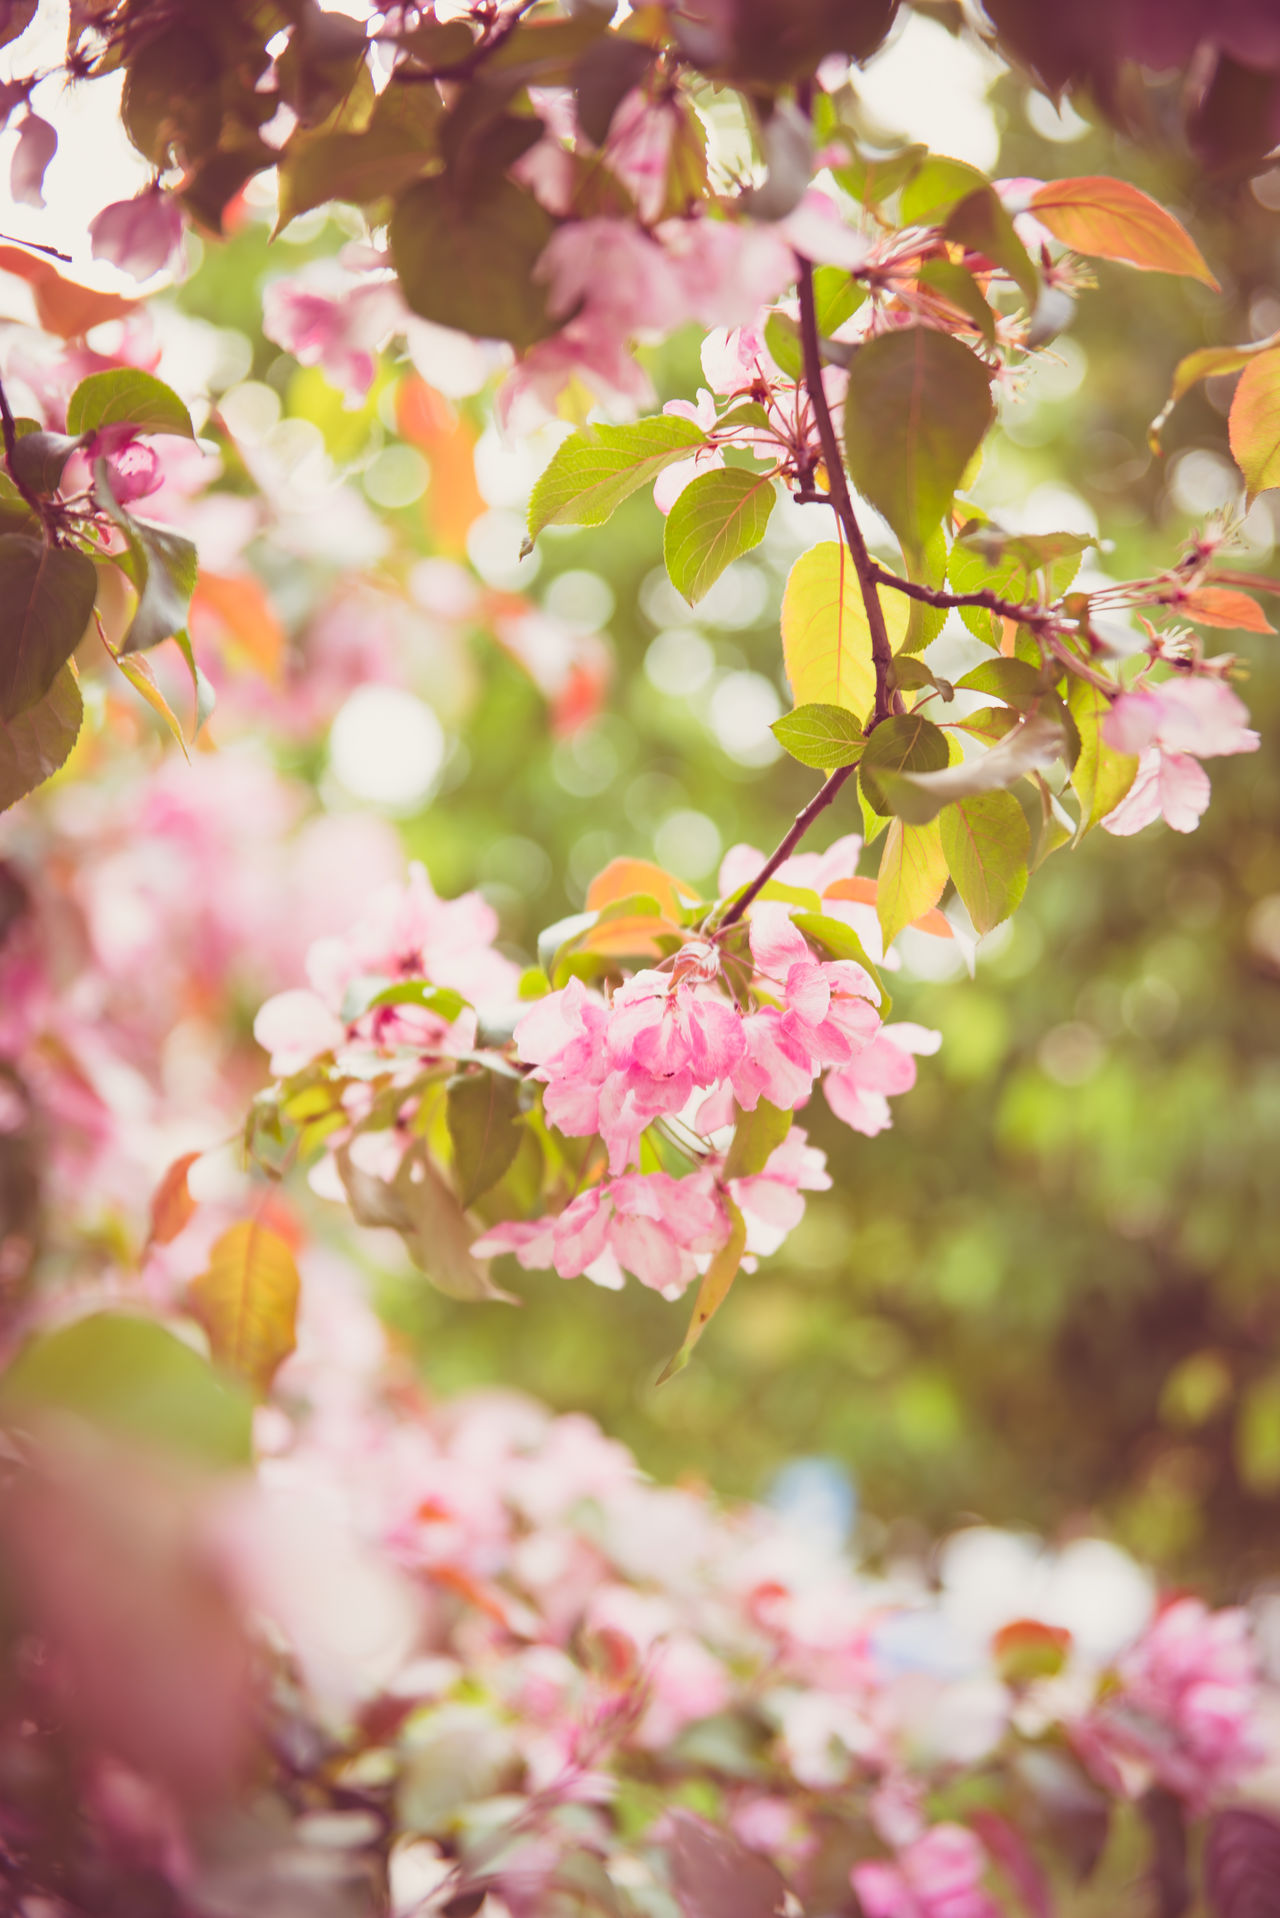 Beauty In Nature Blooming Branch Close-up Day Flower Flower Head Focus On Foreground Fragility Freshness Growth Nature No People Outdoors Petal Pink Color Plant Tree